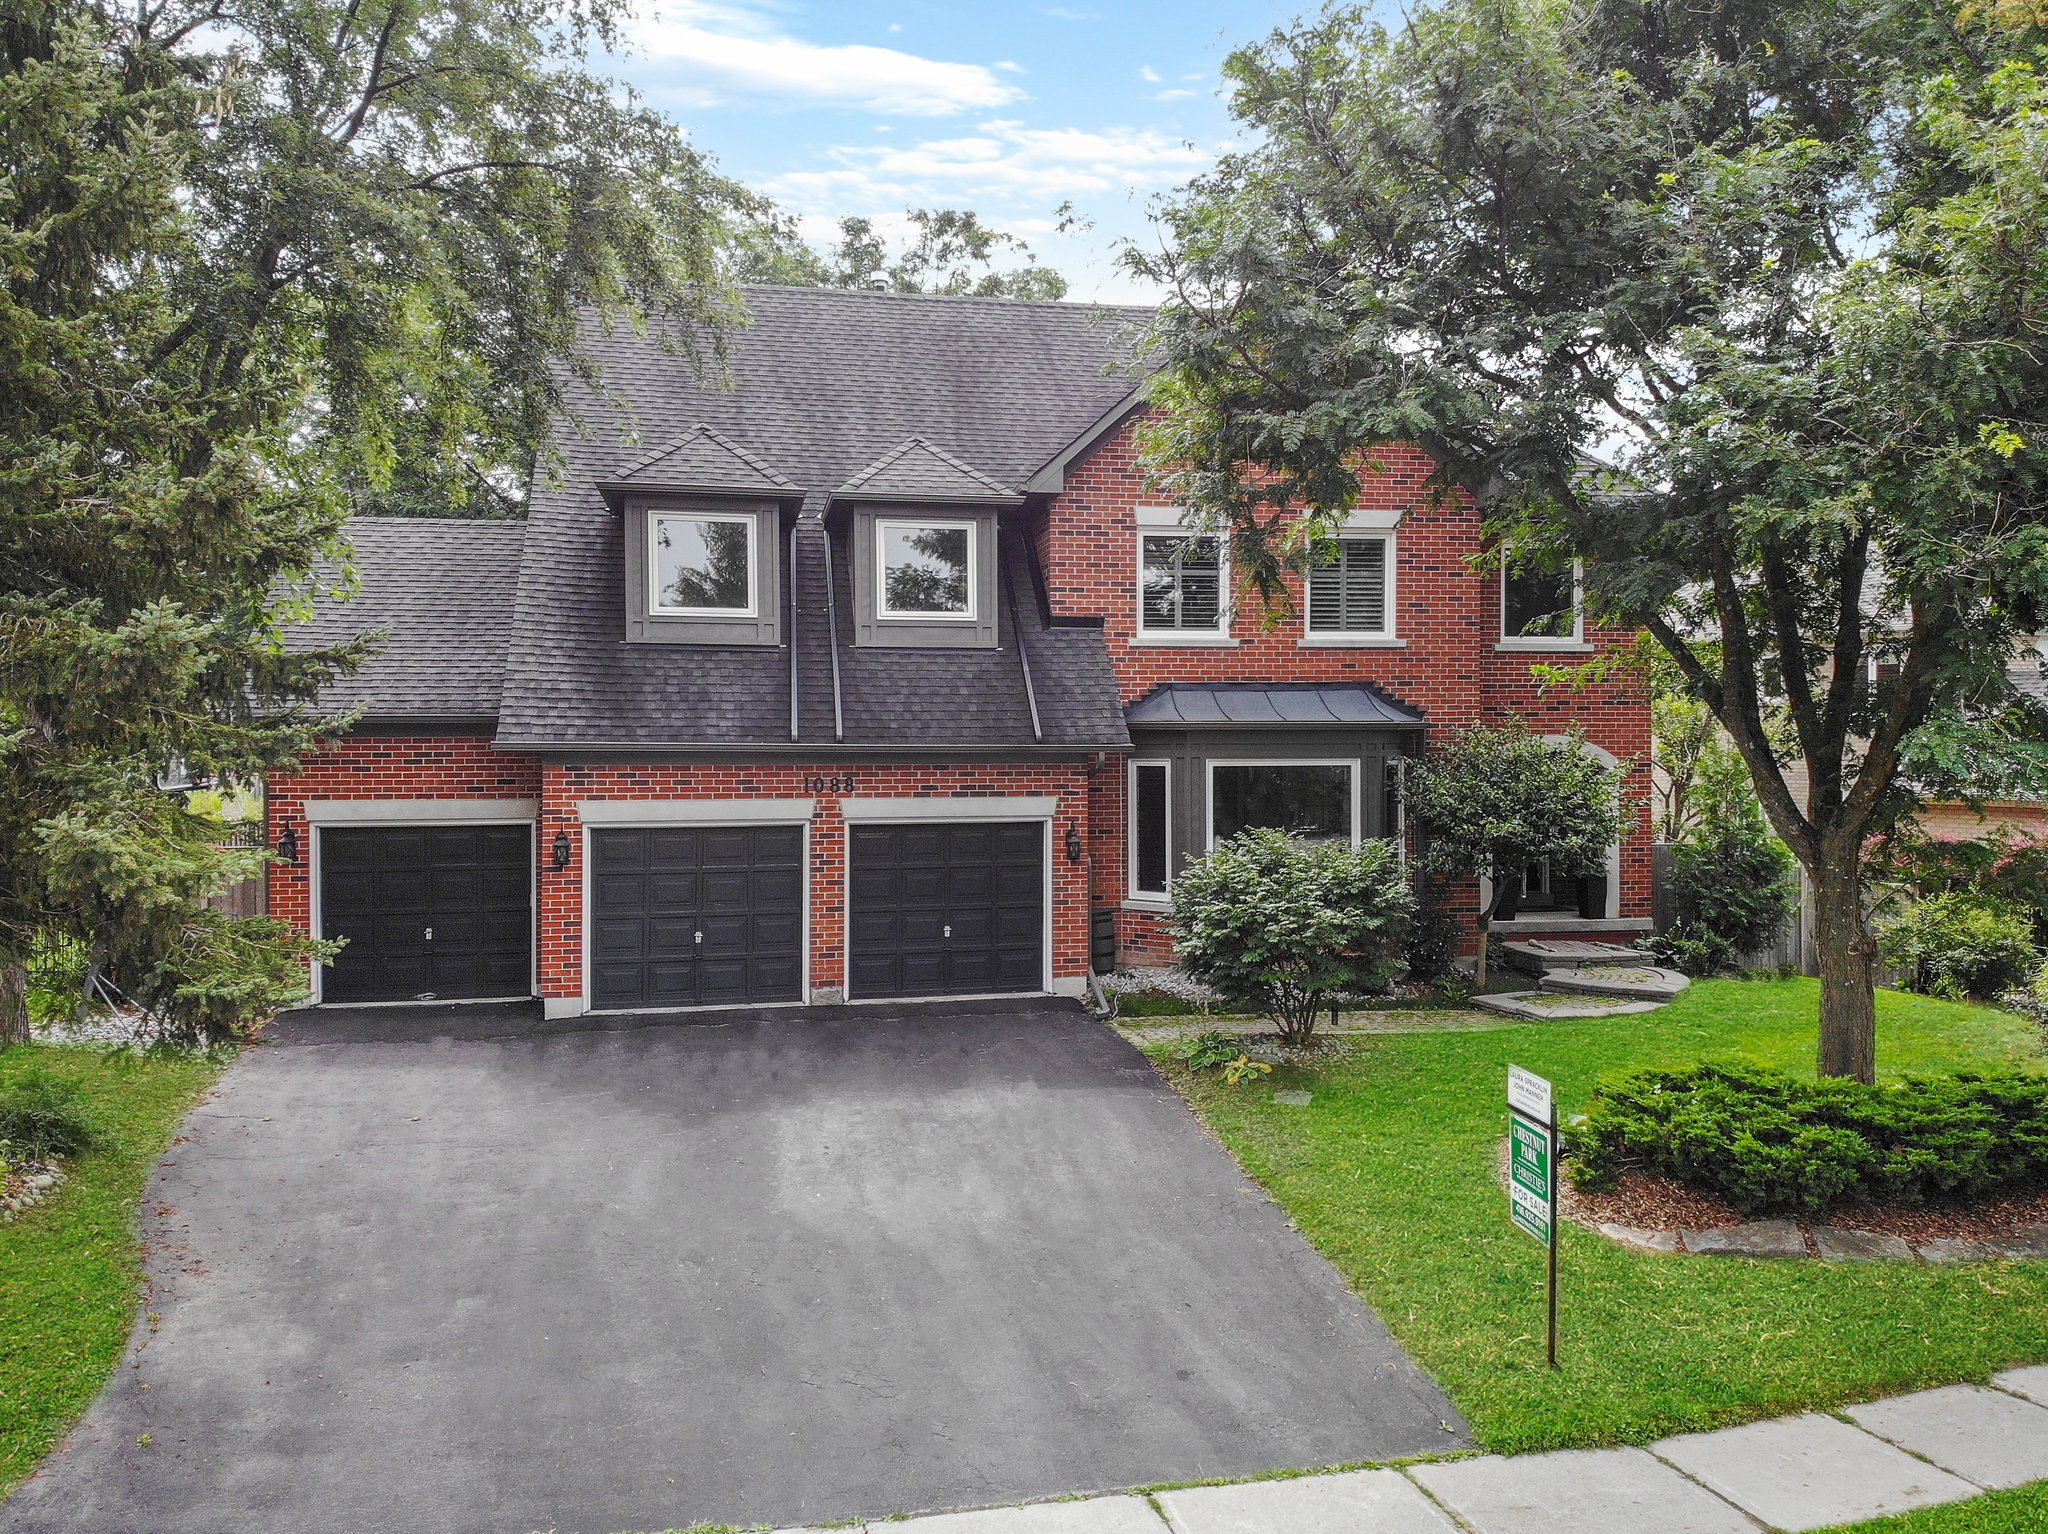 1088 Stonehaven Ave, Newmarket, ON L3X 1M7, Canada